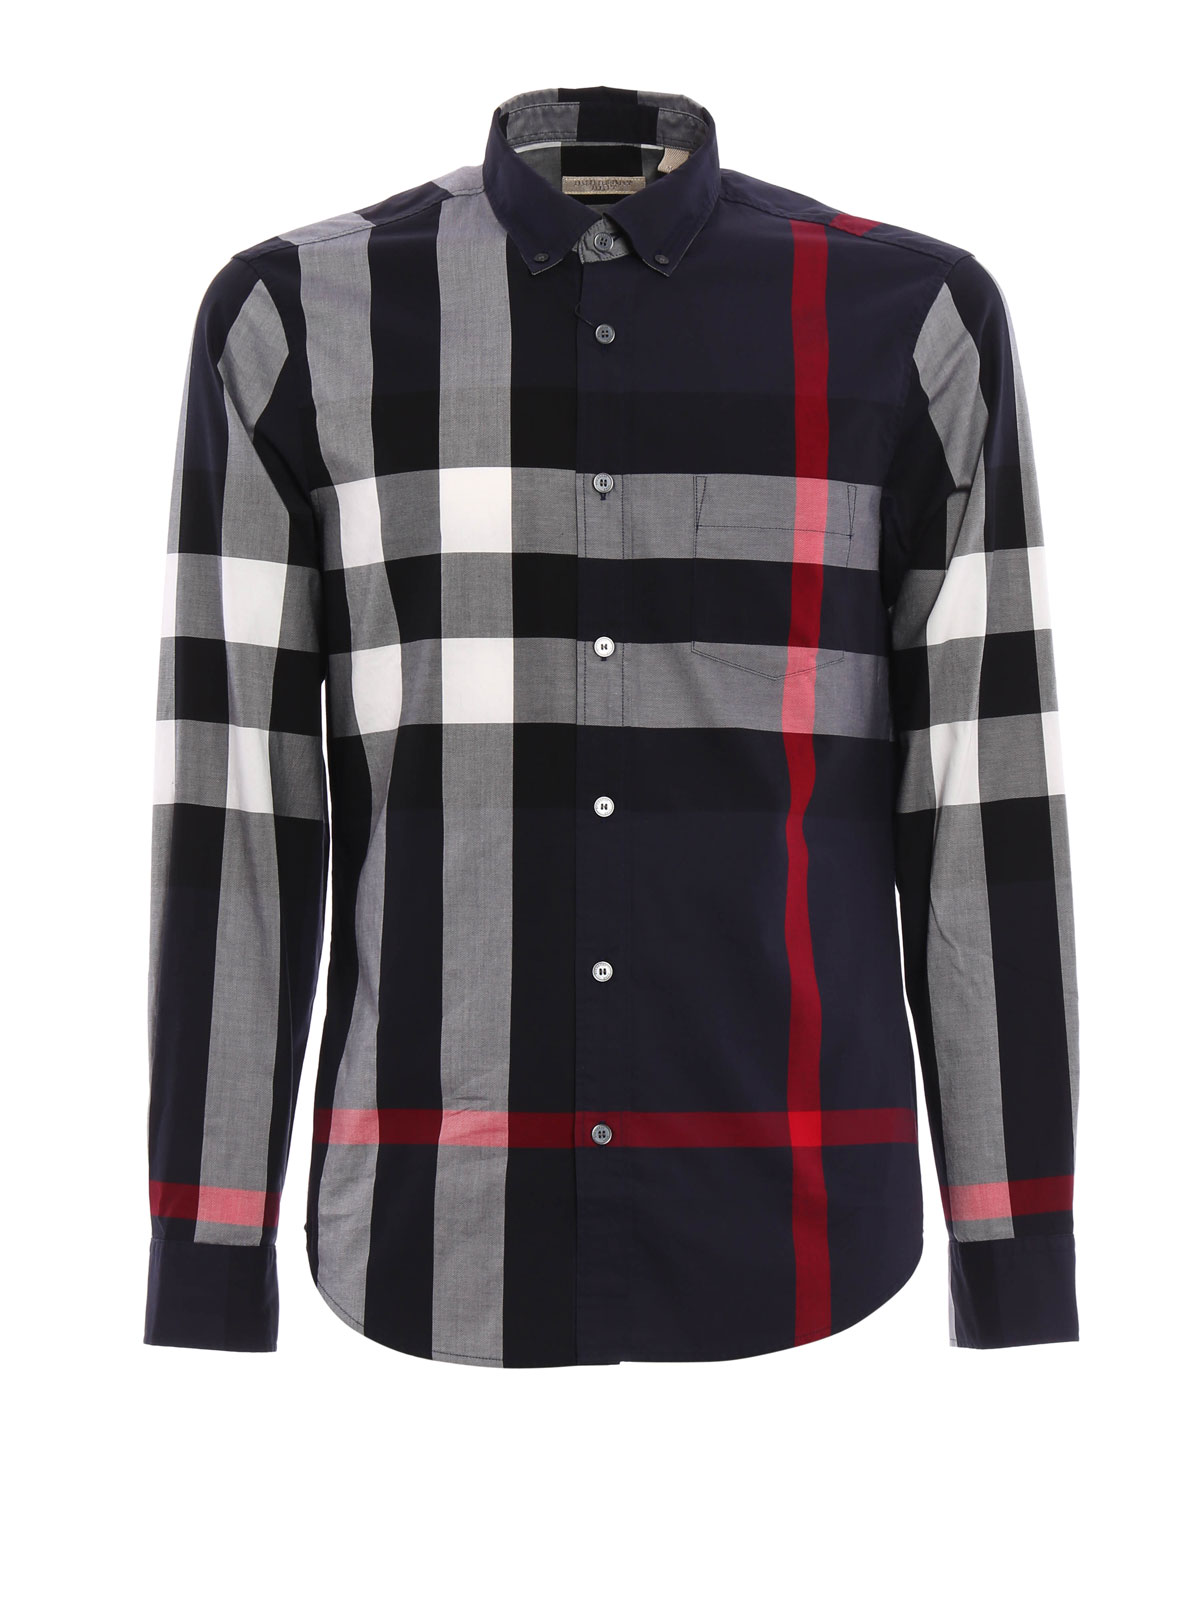 Fred Check Cotton Shirt By Burberry Shirts Ikrix